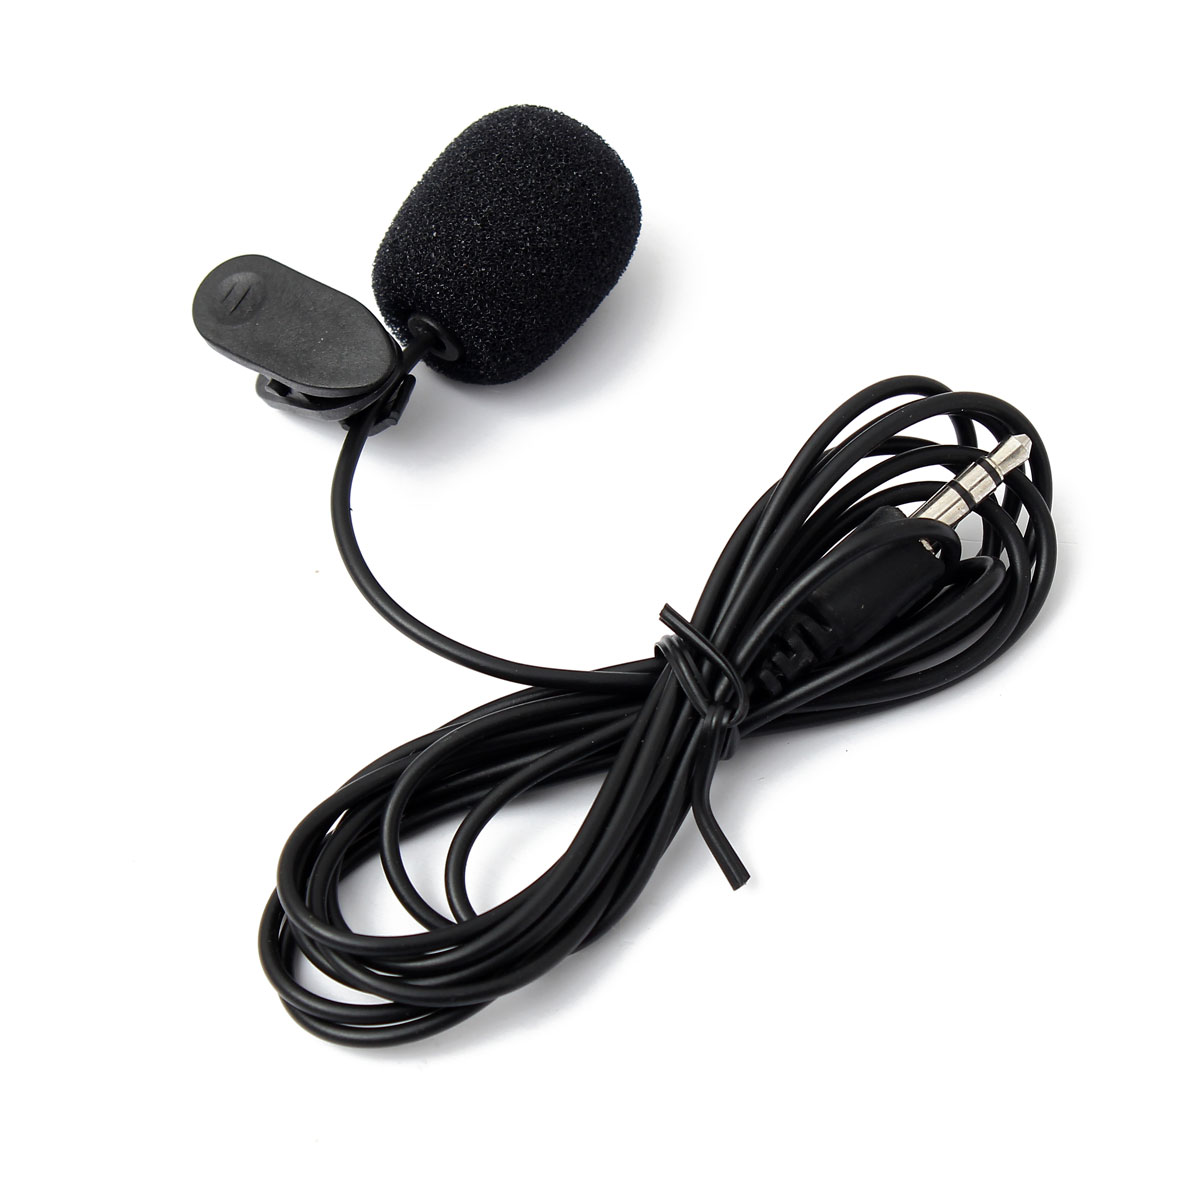 Portable 3.5mm  Mic Microphone External Hands-Free Mini Wired Collar Clip Lapel Lavalier Microphone For PC Laptop